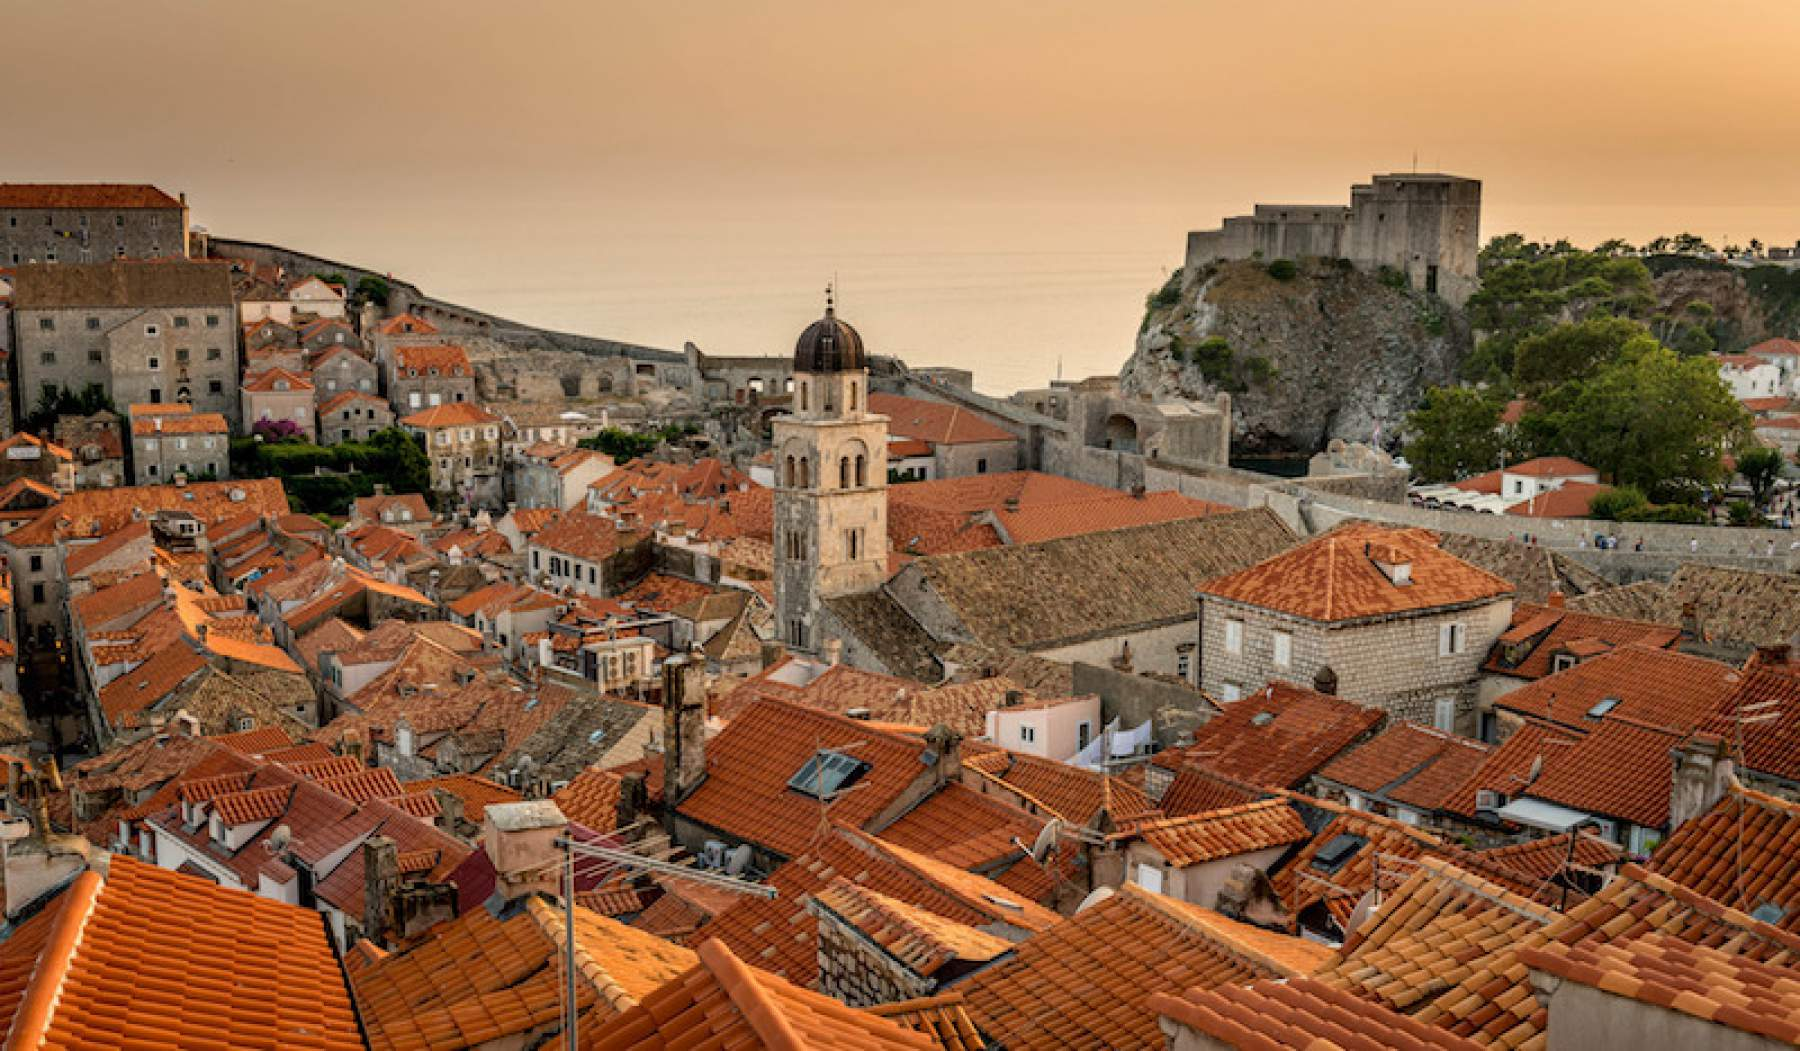 The roofs of Dubrovnik, Croatia